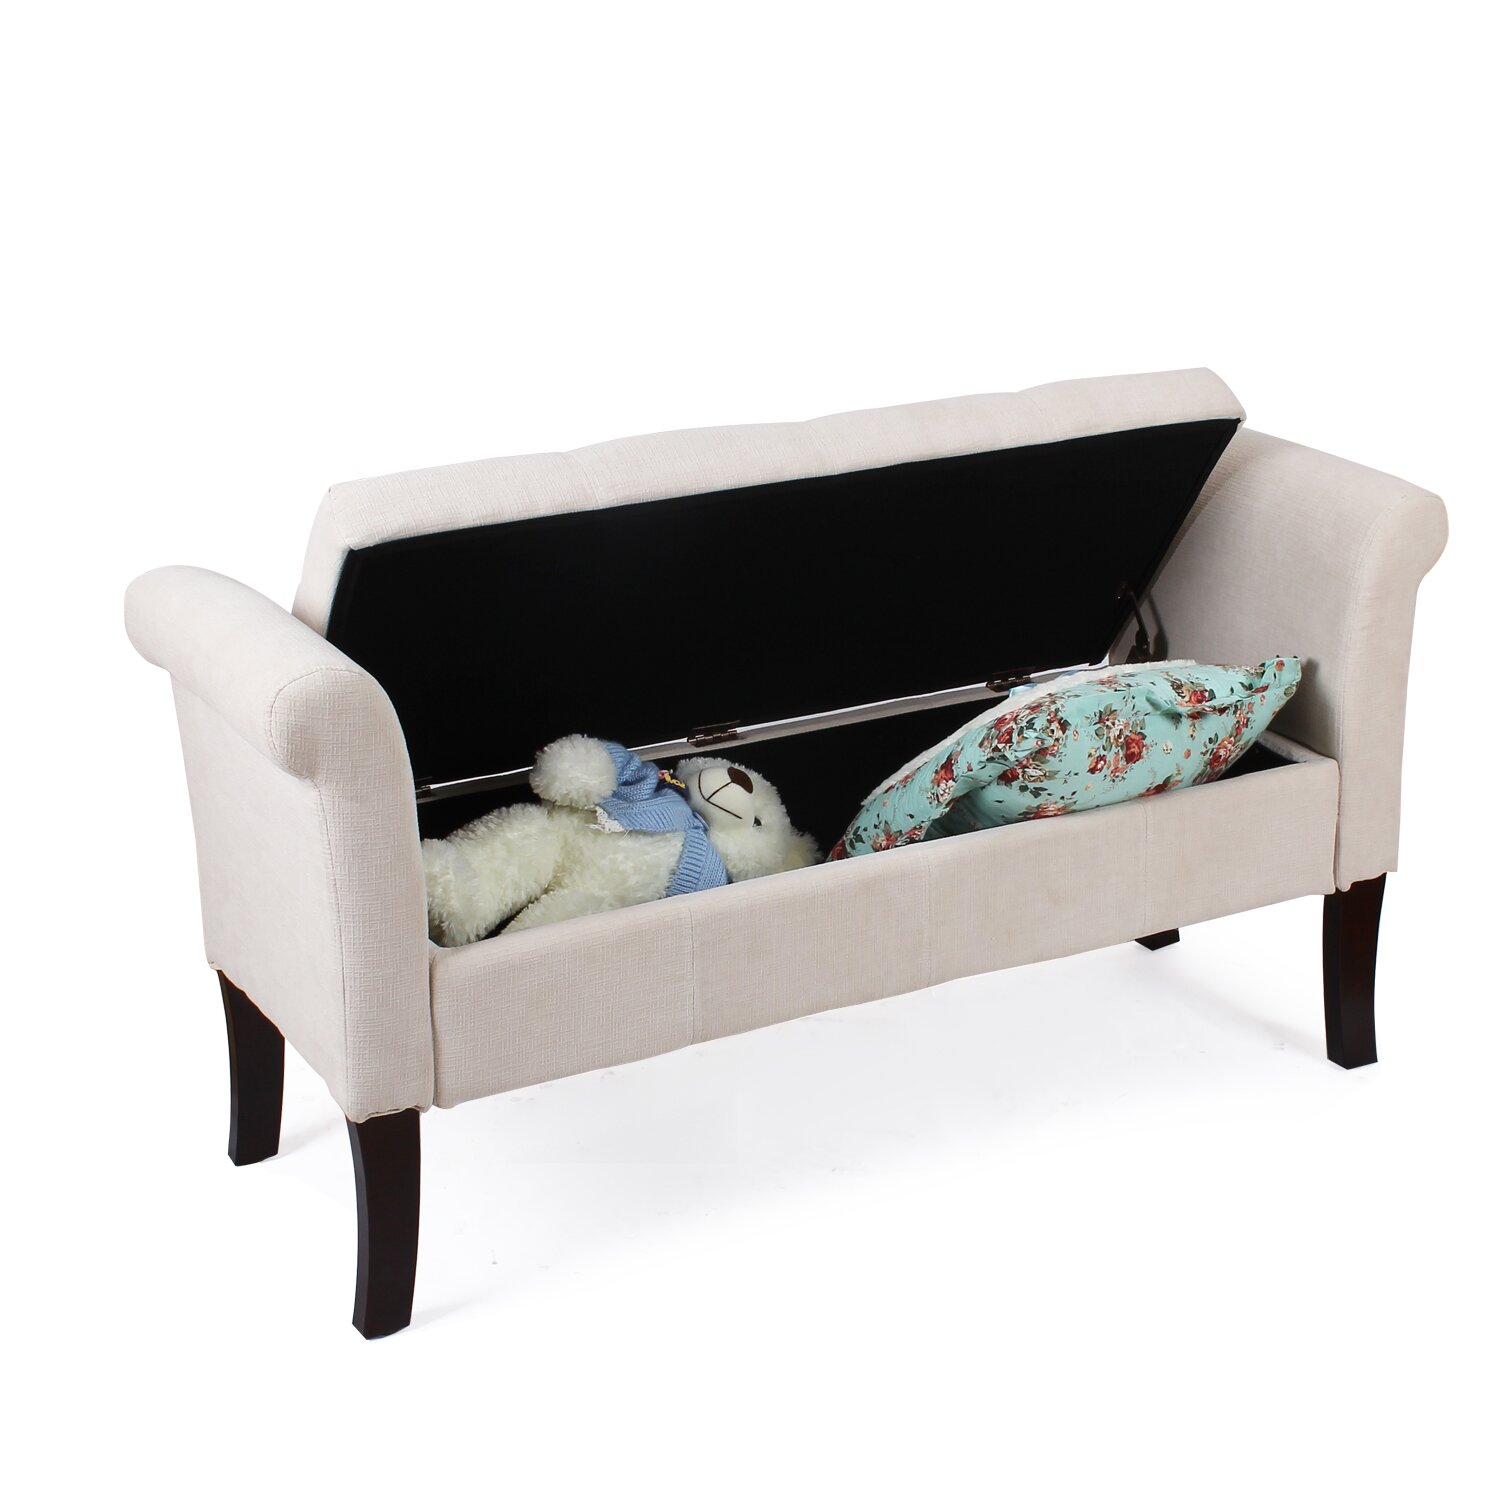 AdecoTrading Storage Bedroom Bench & Reviews